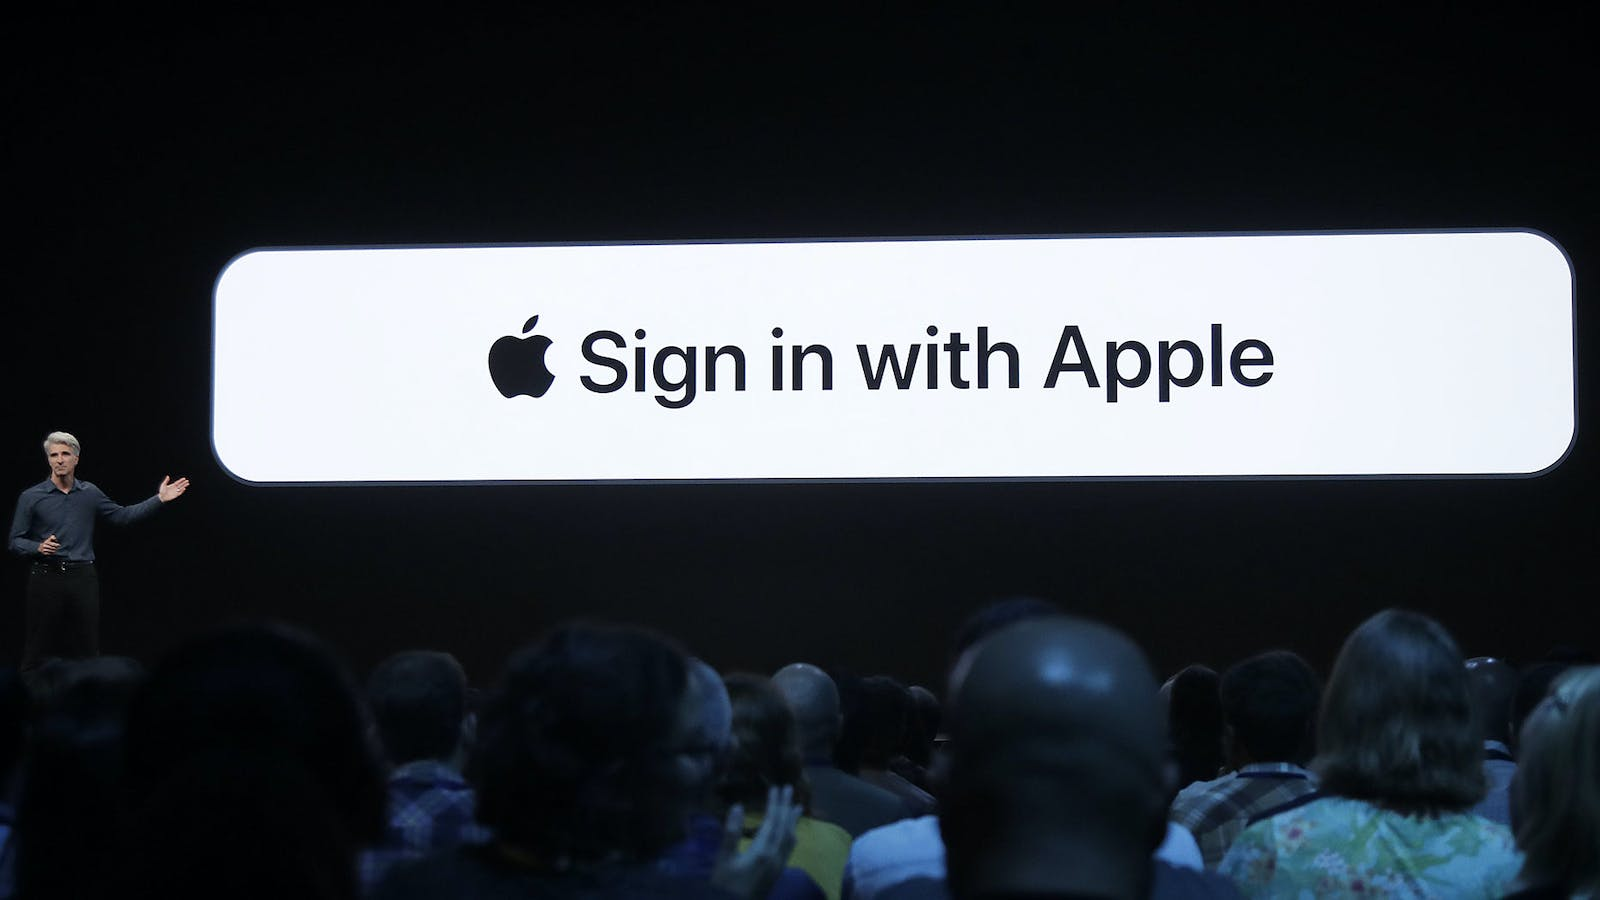 Craig Federighi, Apple's senior vice president of software engineering, unveils Apple's sign-in button in 2019. Photo by AP.